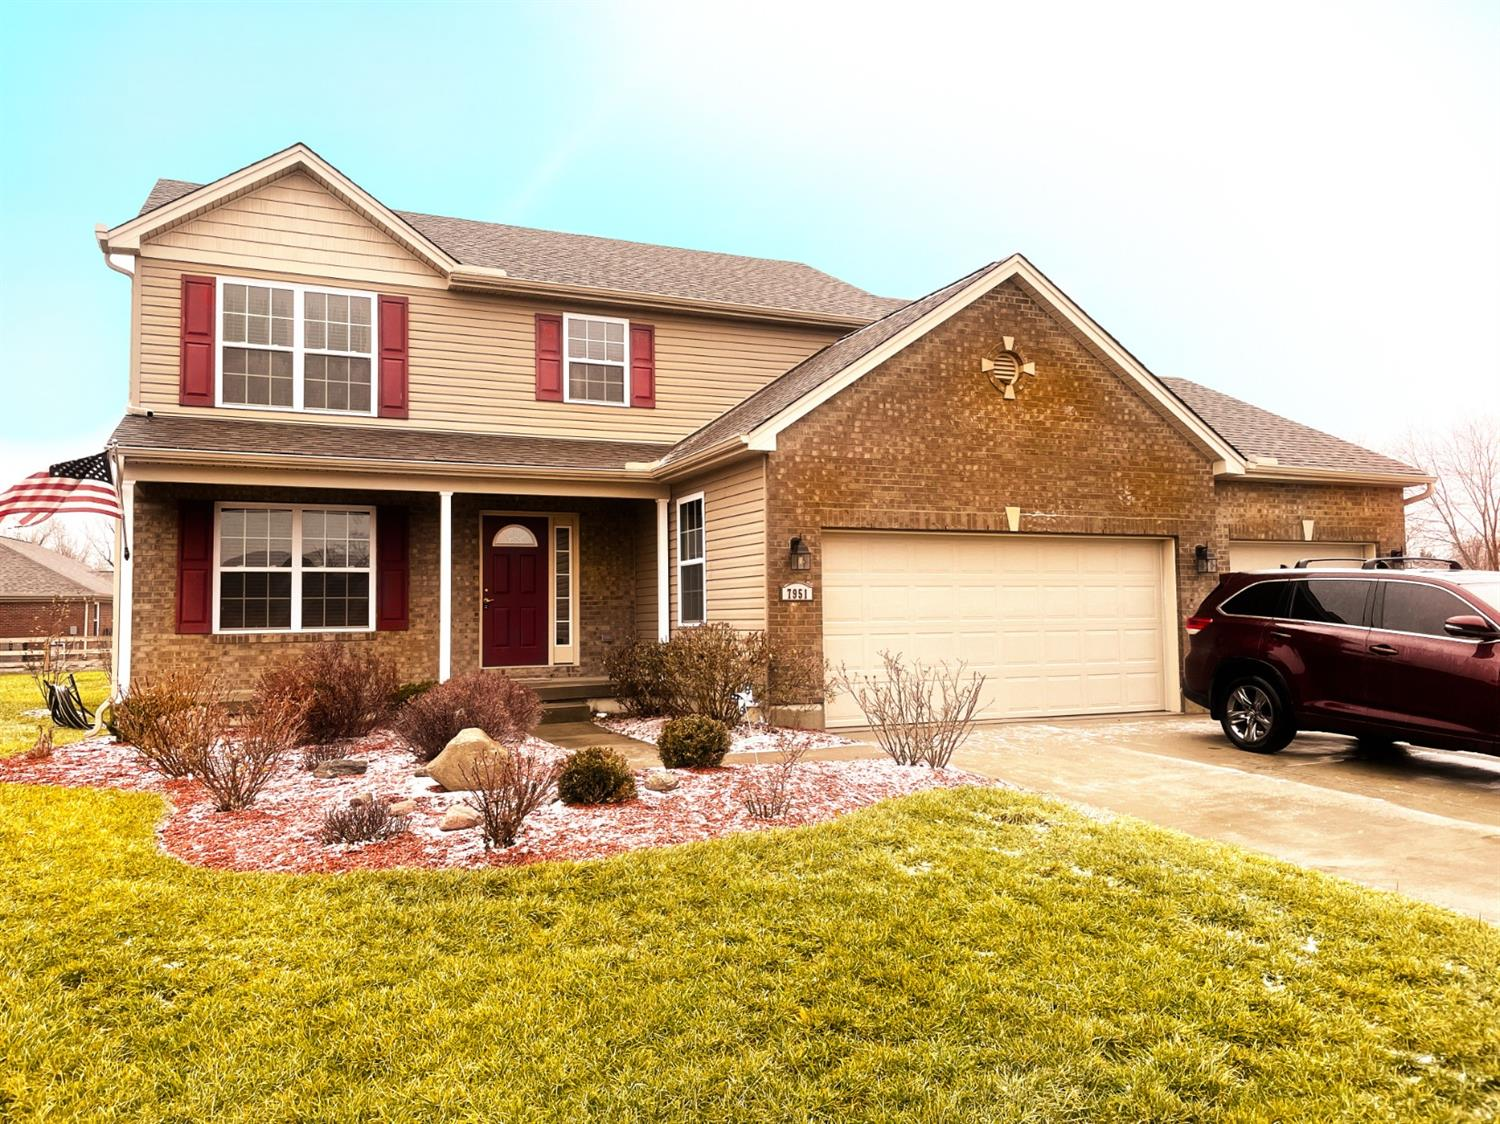 7951 Victory Garden Ln Liberty Twp., OH